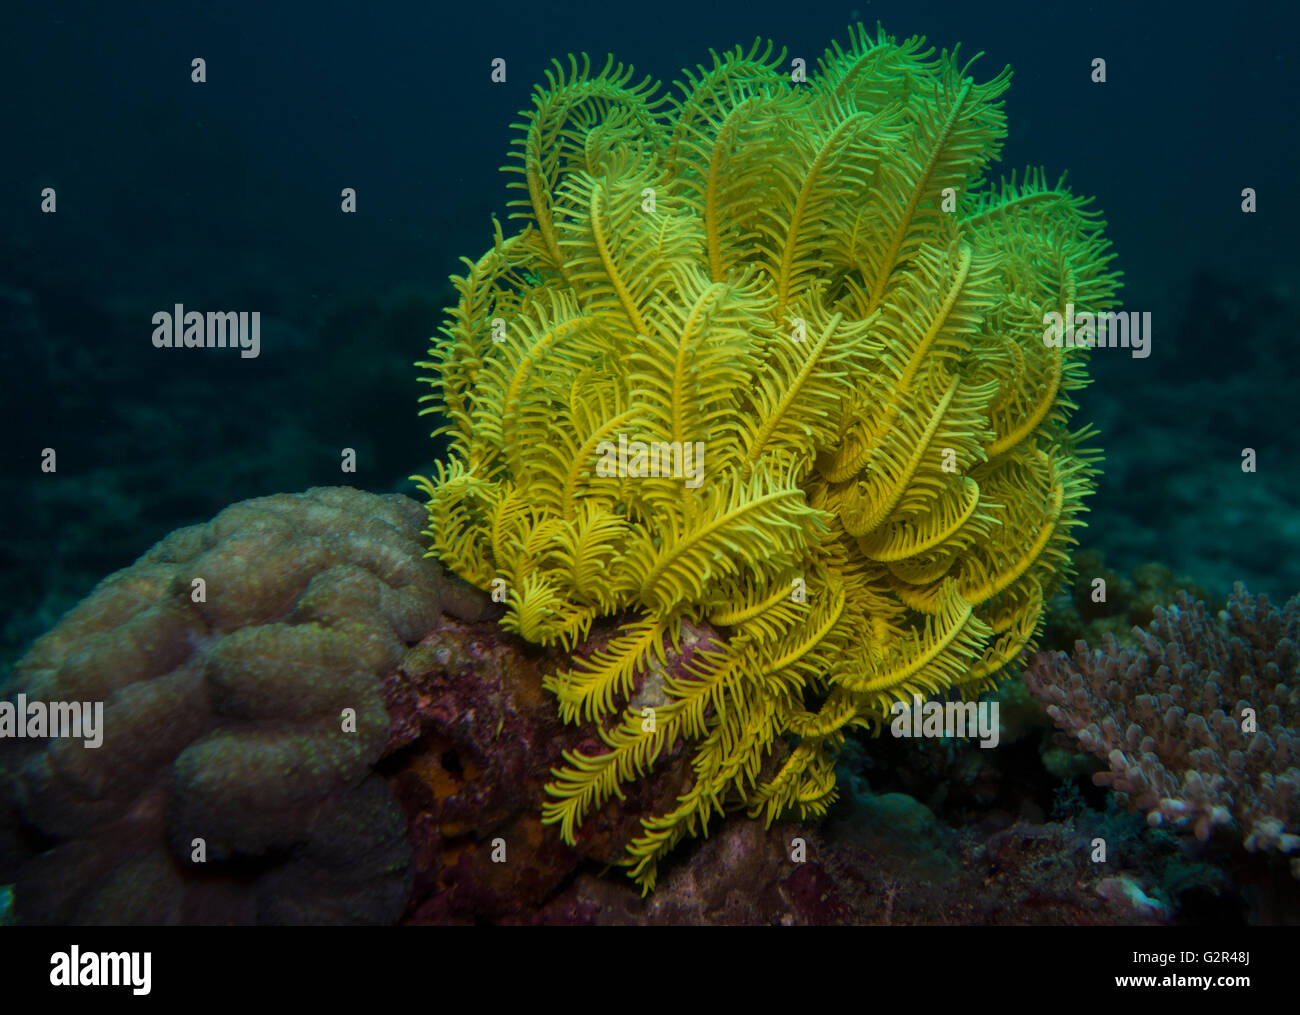 Crinoid, a bright yellow feather star, from the South China Sea, Coral Triangle, Brunei. - Stock Image